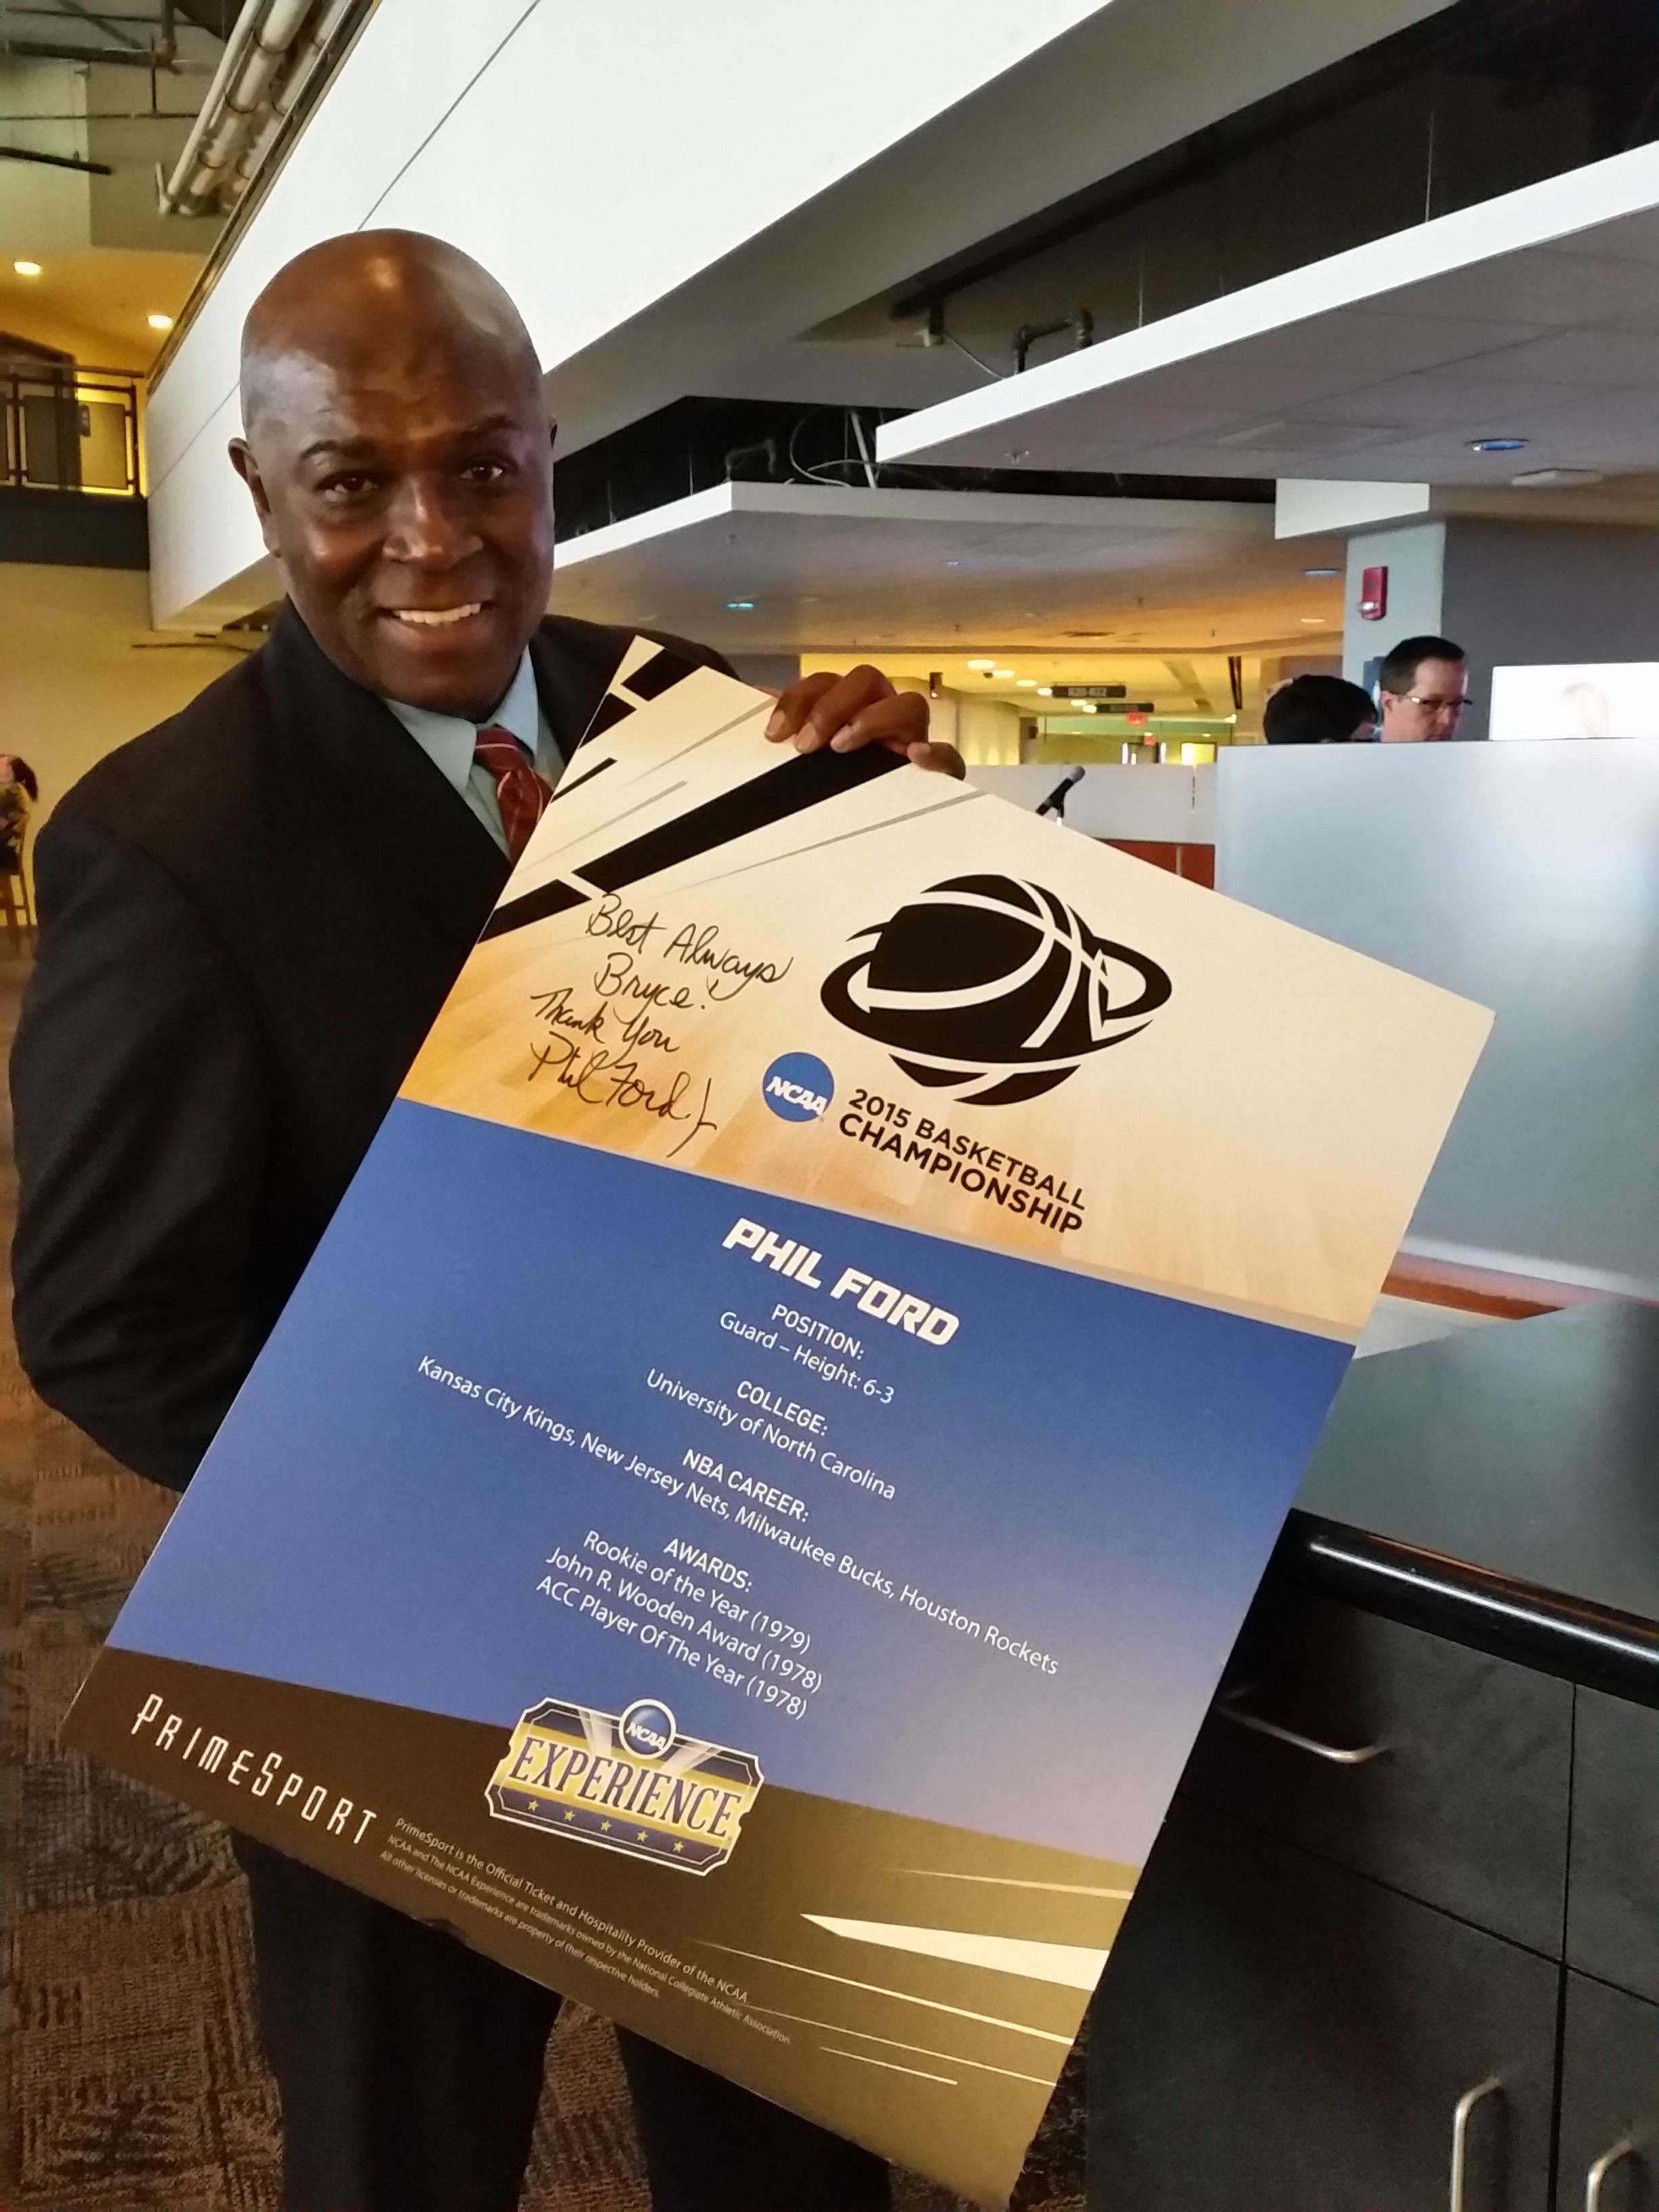 Phil Ford at the NCAA Men s Basketball Tourney pregame fan event